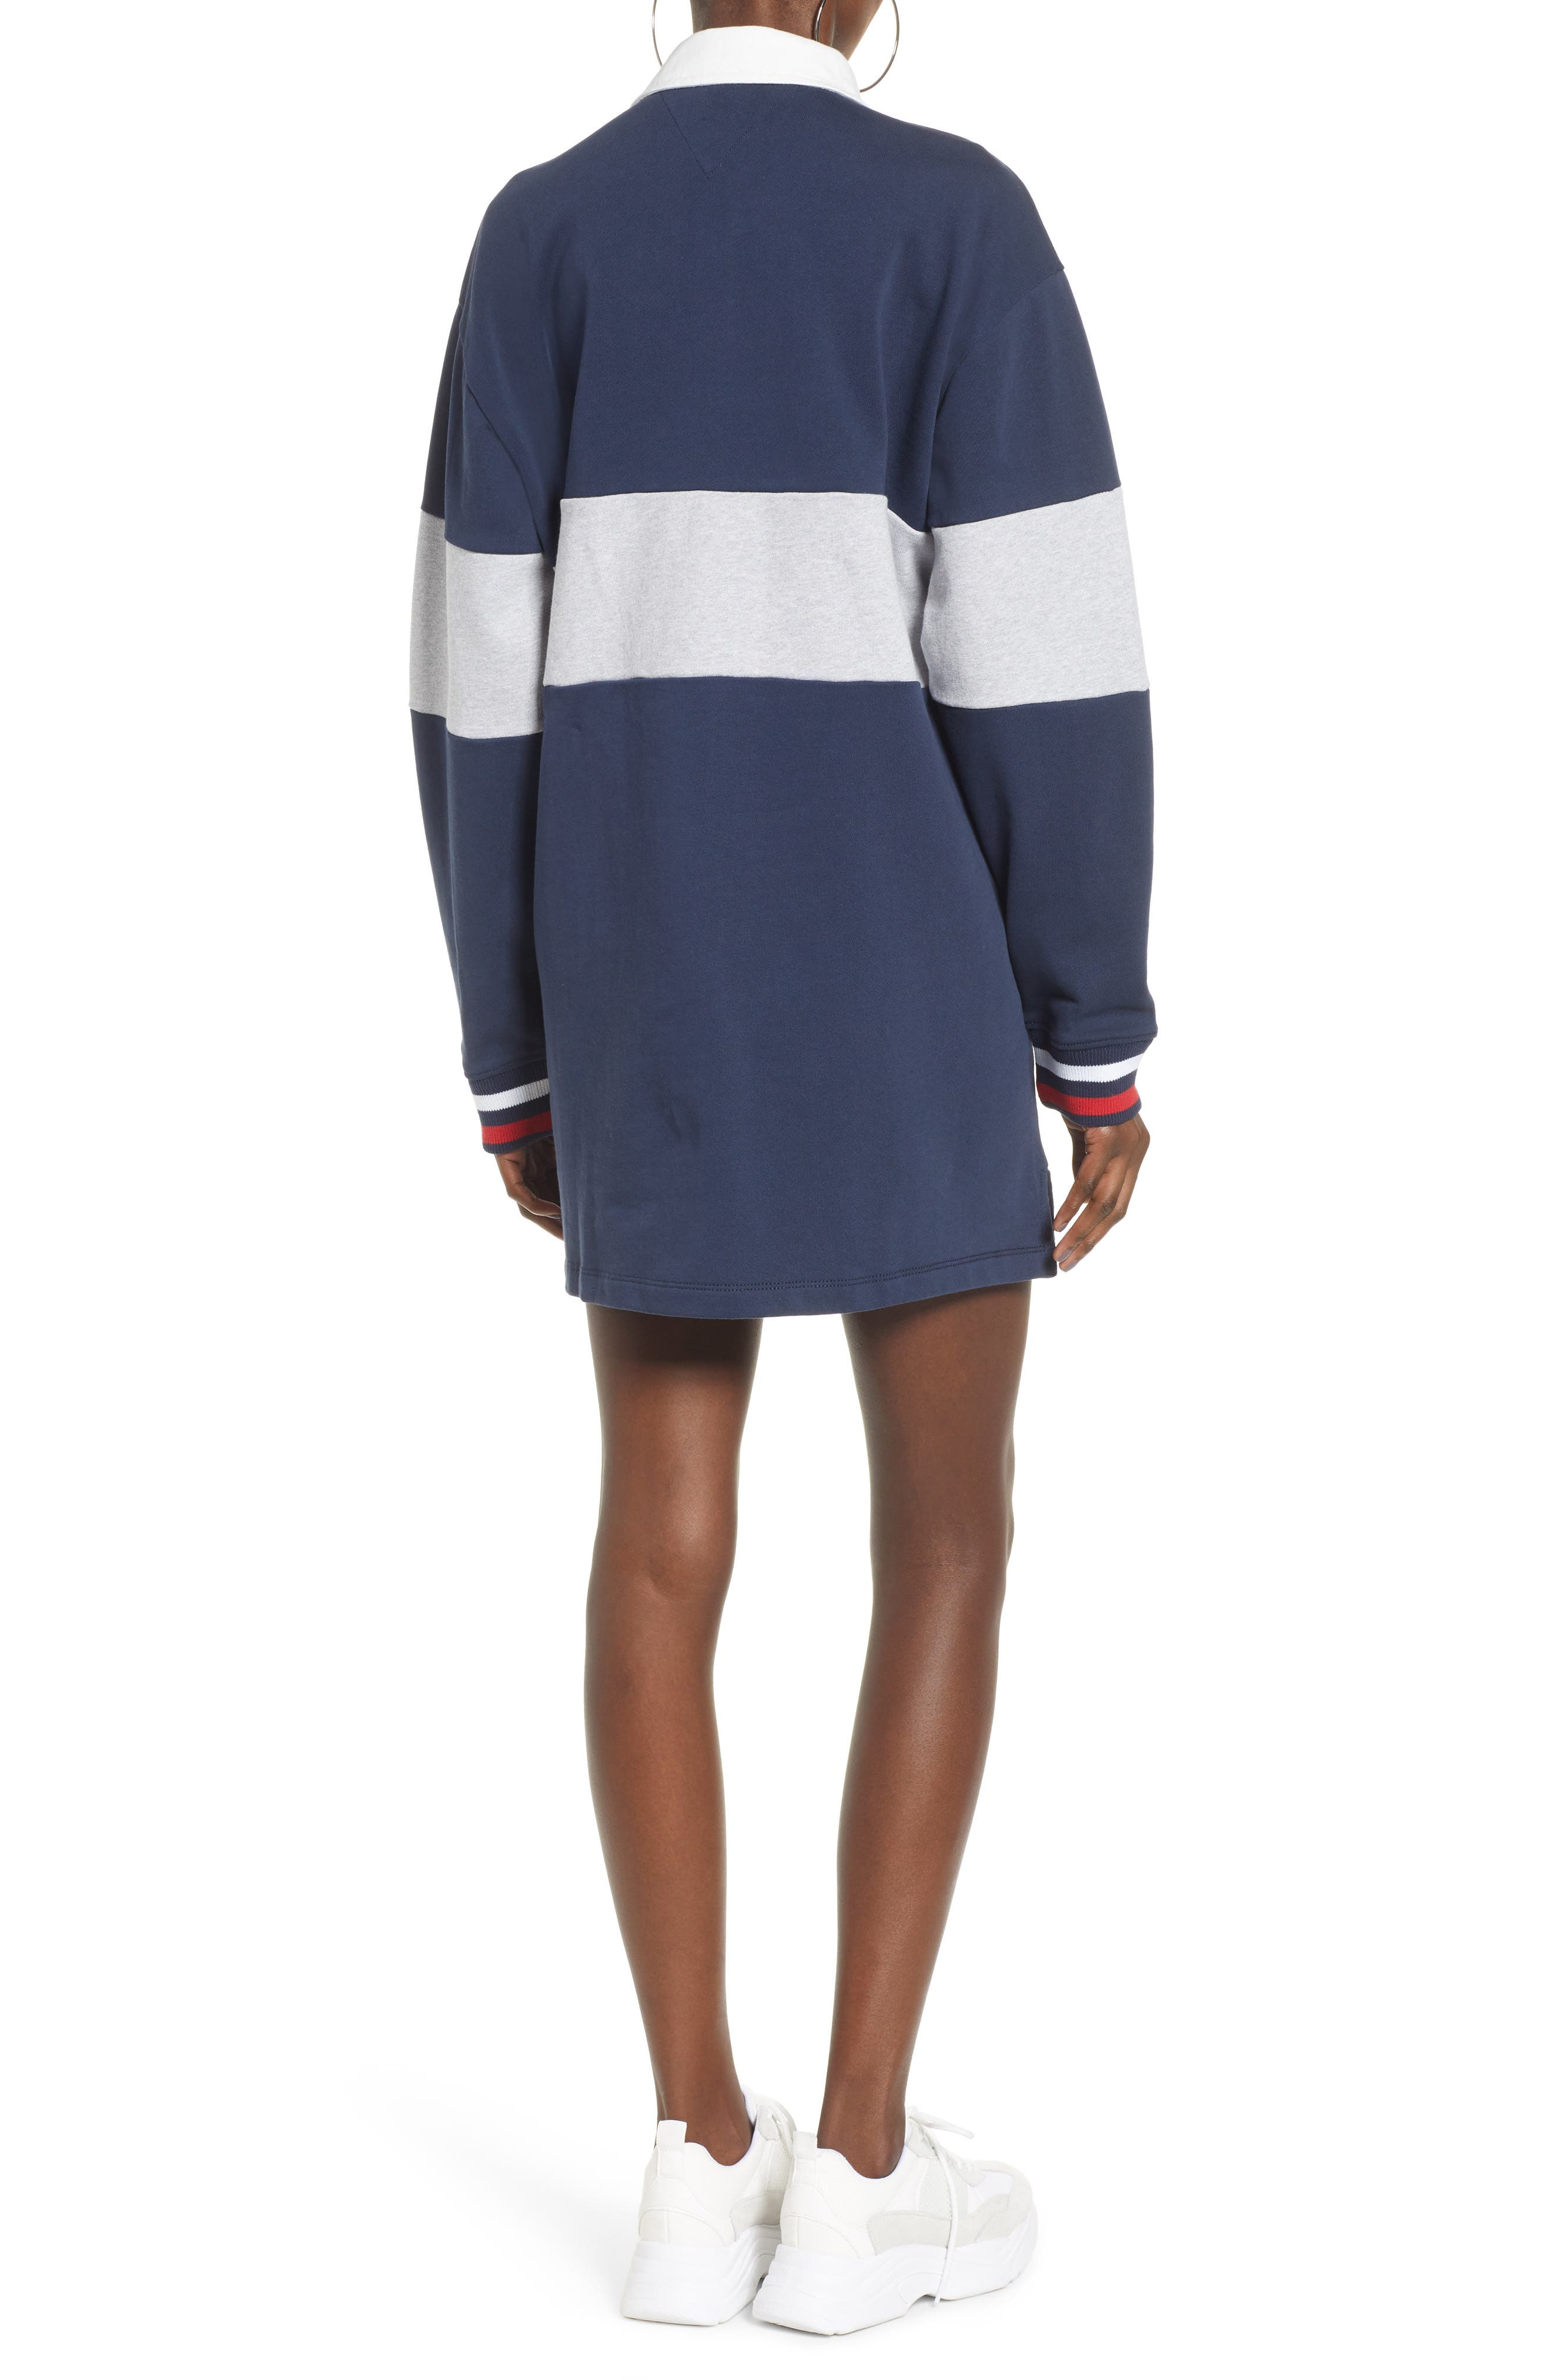 TOMMY JEANS, Logo Rugby Dress, Alternate thumbnail 2, color, 400